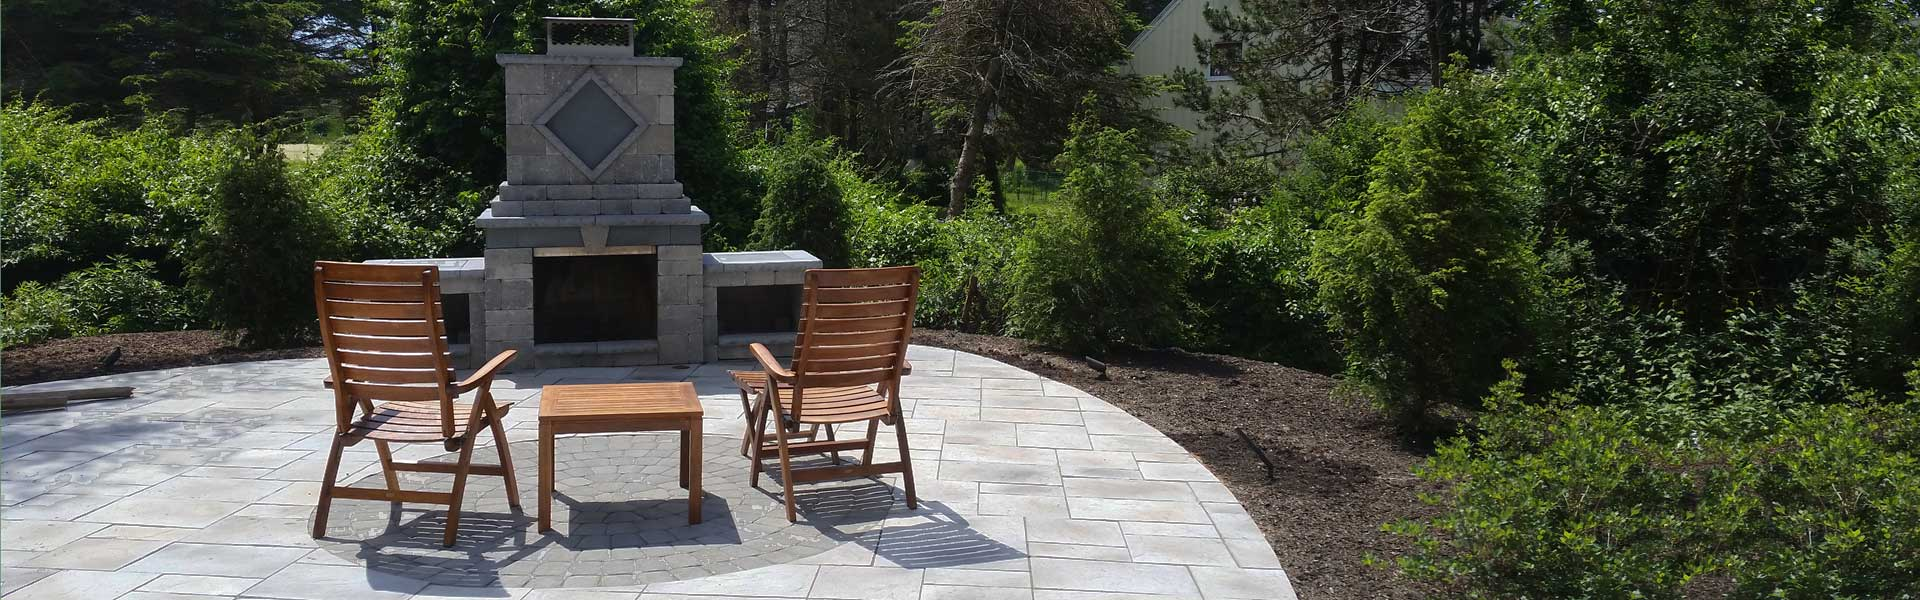 Portland Maine outdoor fireplace